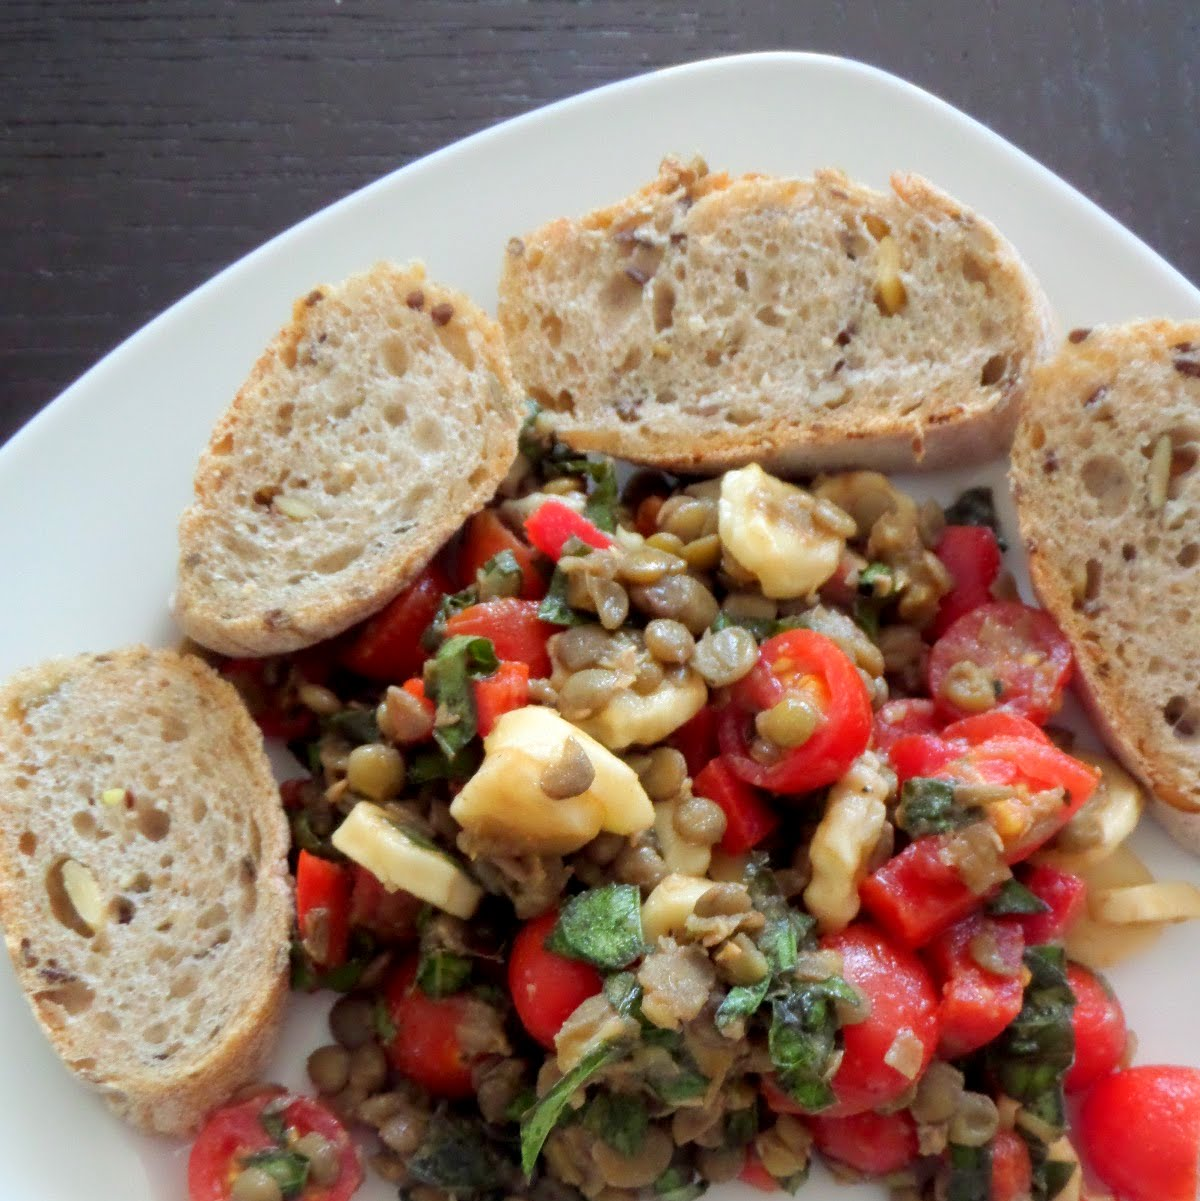 Lentil Caprese Salad:  A lentil salad with tomatoes, mozzarella, and basil tossed in a balsamic vinaigrette. It's great as a side or a light lunch.